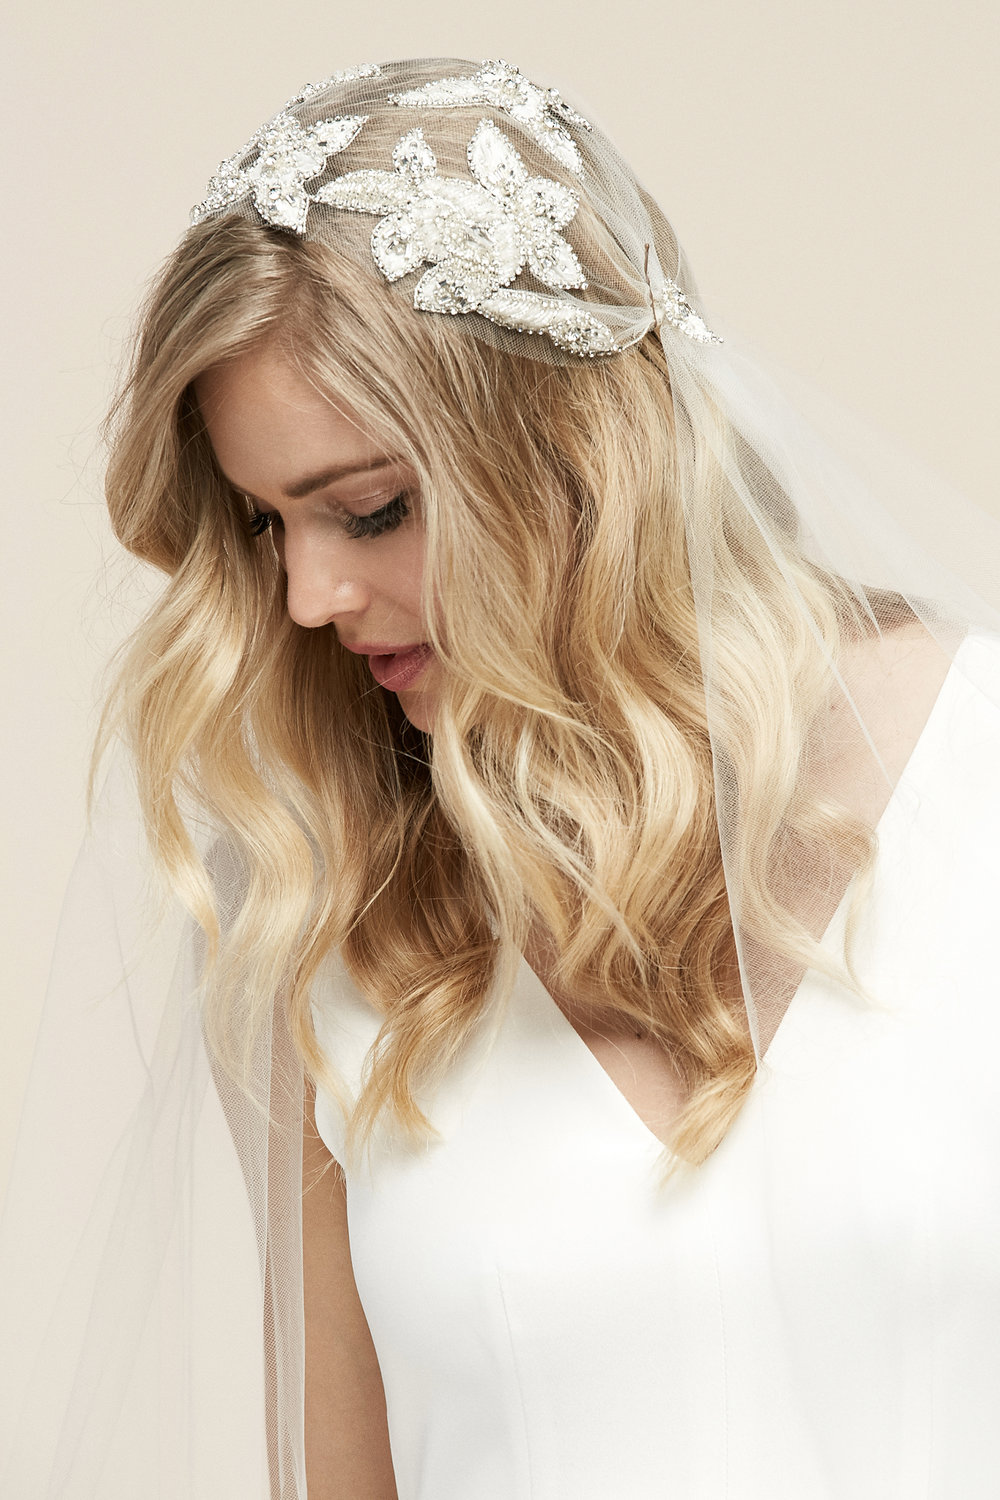 Berlin Cap Veil   Details- Floral applique beaded Juliet cap veil  Cathedral only- $678